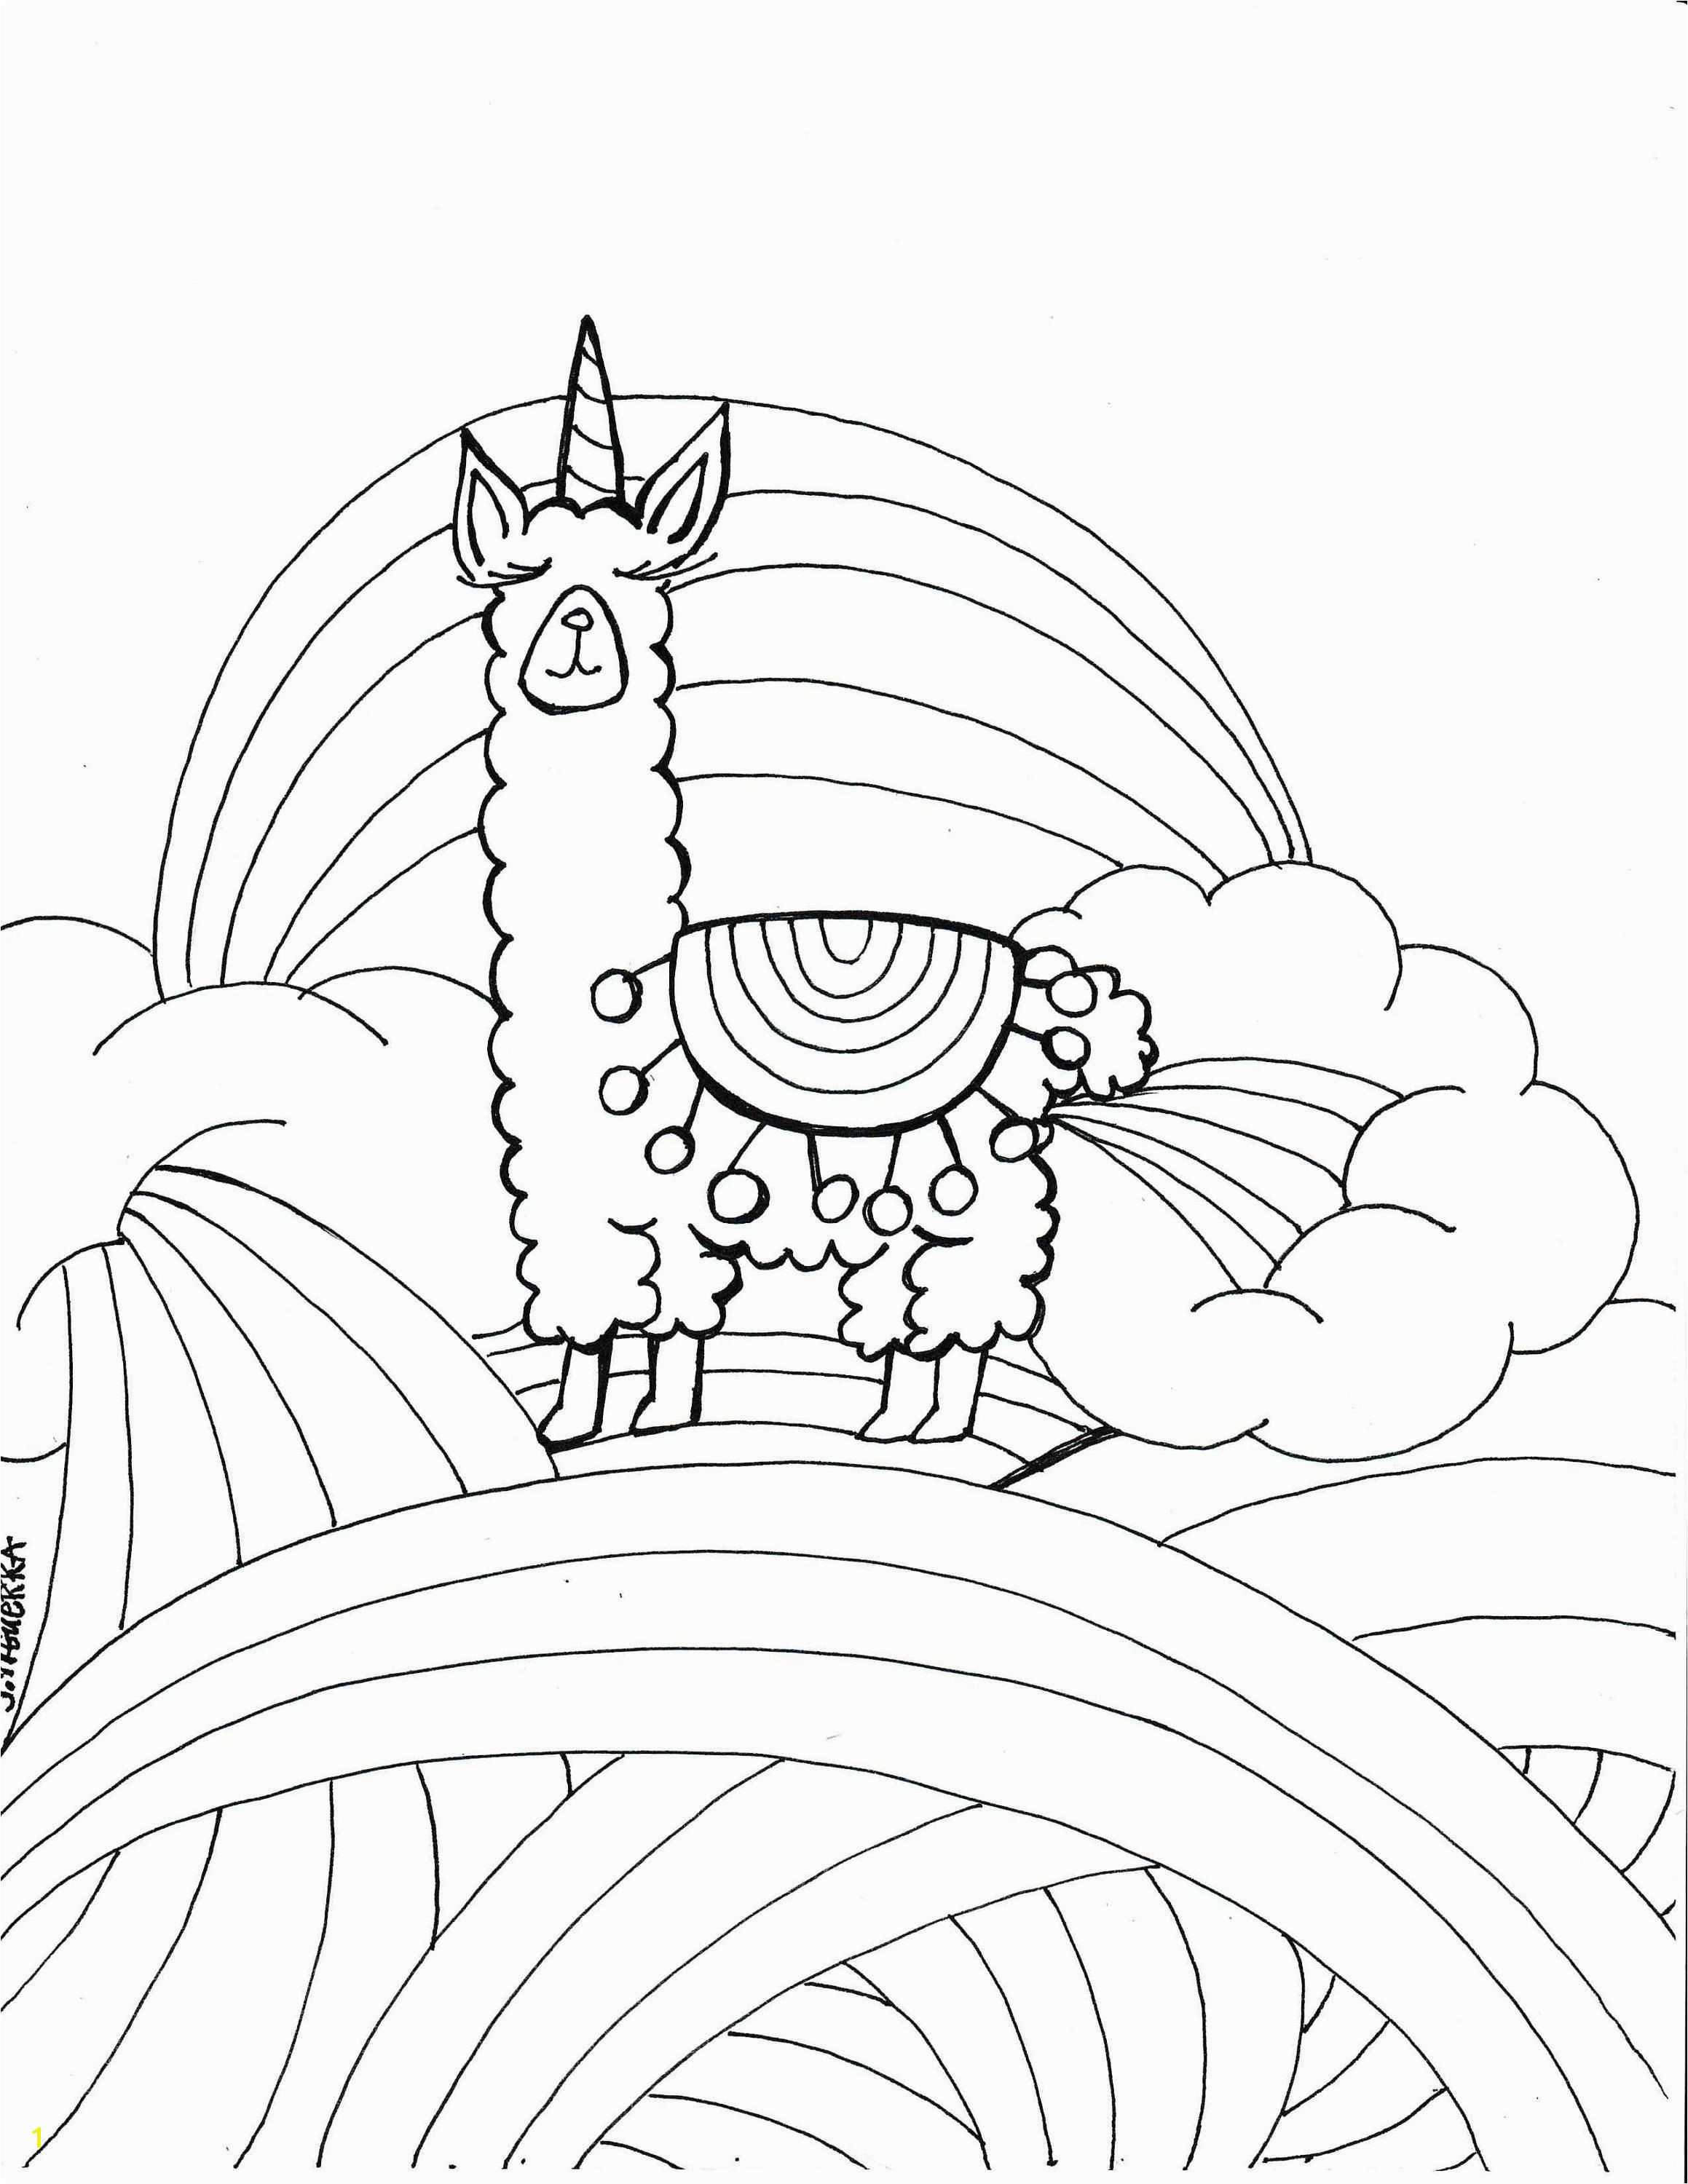 bike coloring pages bicycle coloring page bike coloring pages best home coloring pages best color sheet